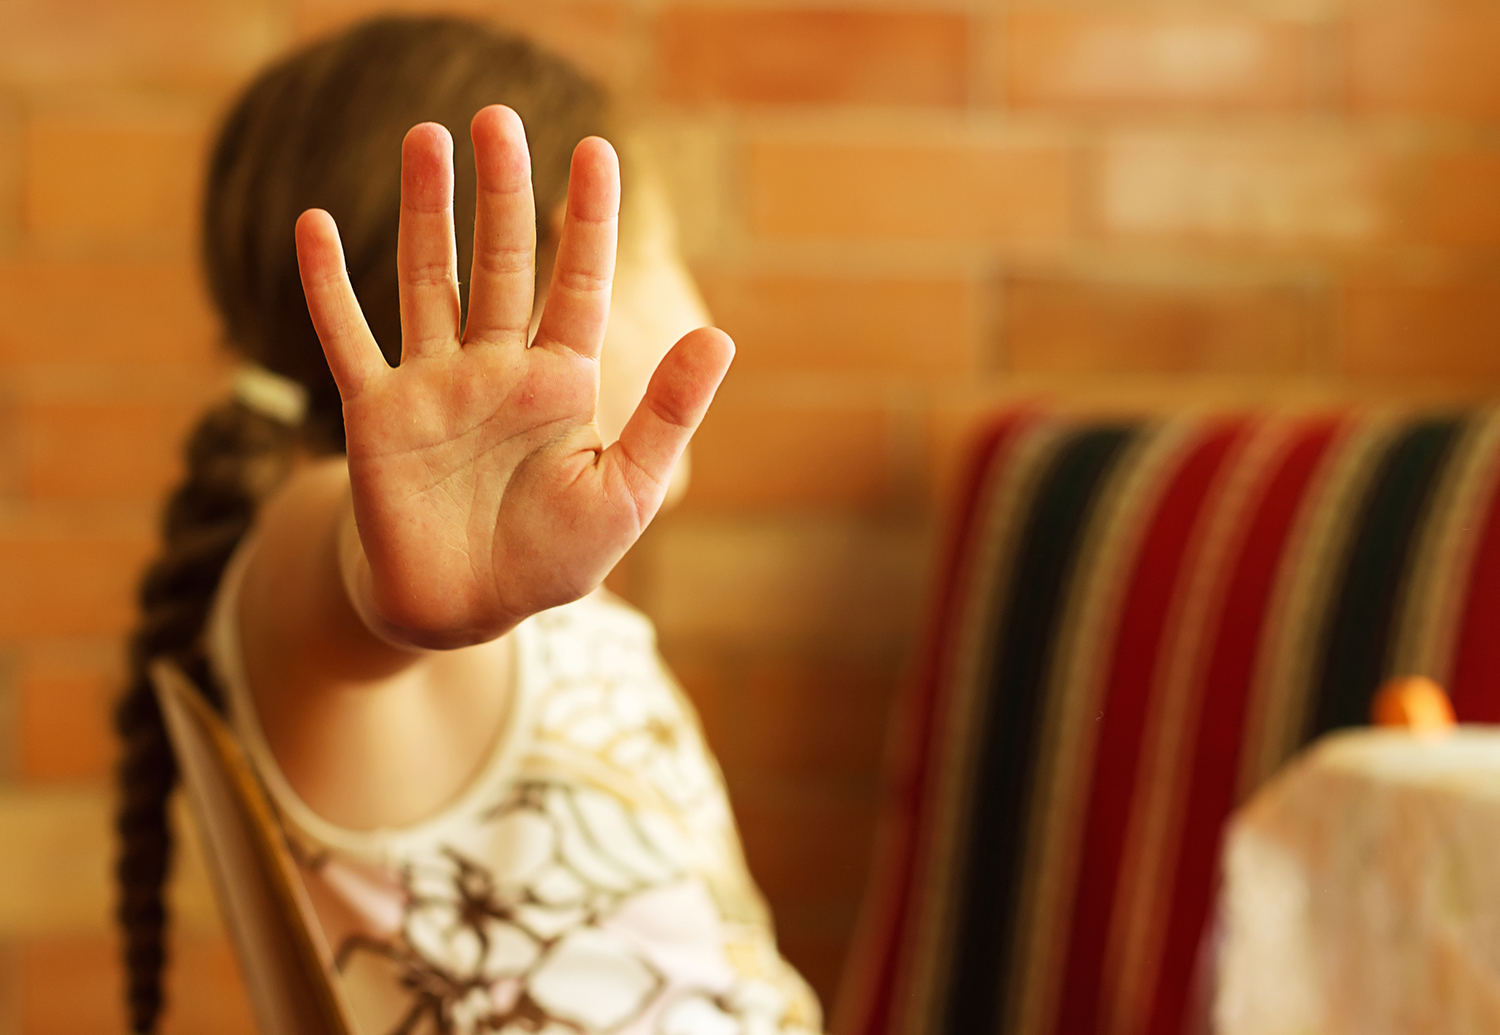 Young girl looks away as she holds up her hand to stop childhood violence.